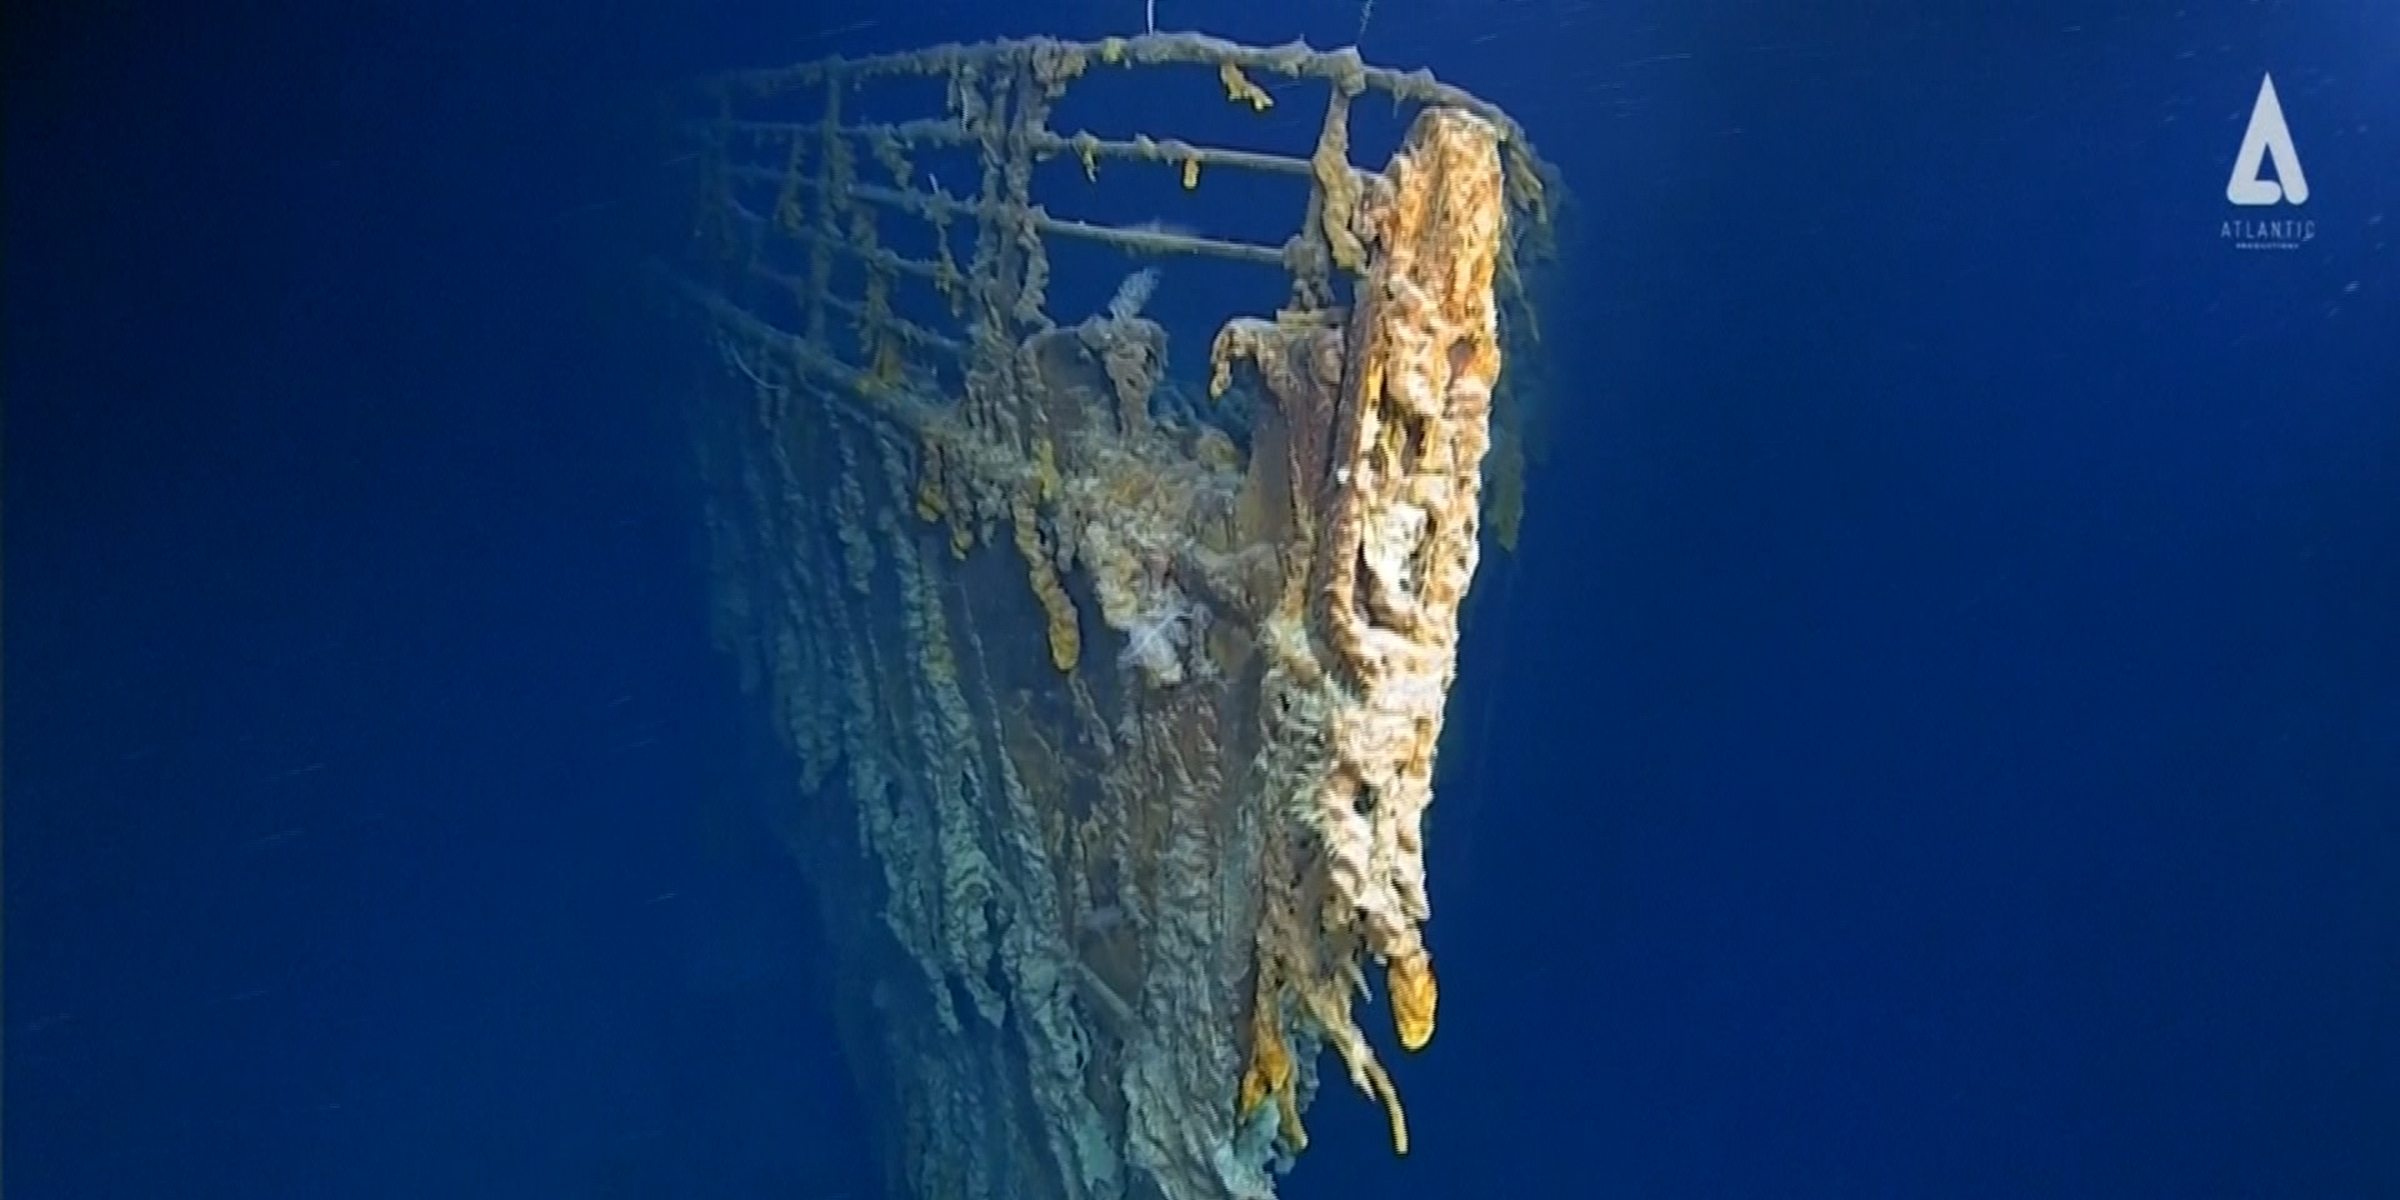 First images of the Titanic in 14 years show 'shocking' deterioration